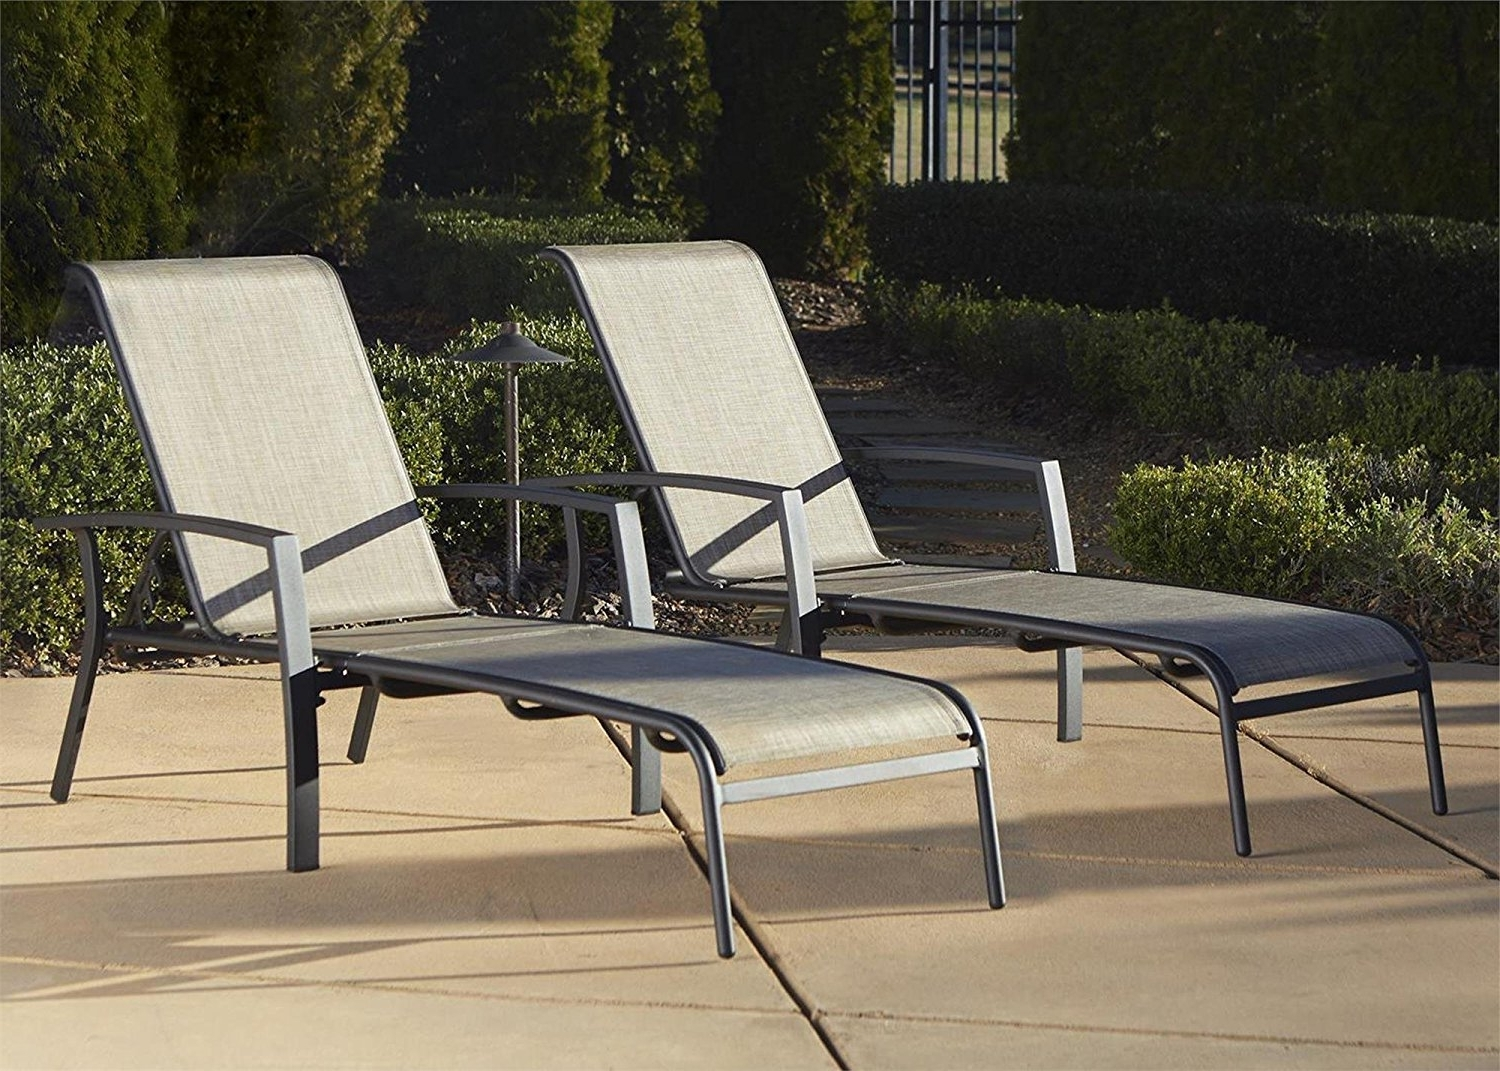 Most Popular Cast Aluminum Chaise Lounges With Wheels With Amazon: Cosco Outdoor Adjustable Aluminum Chaise Lounge Chair (View 13 of 15)